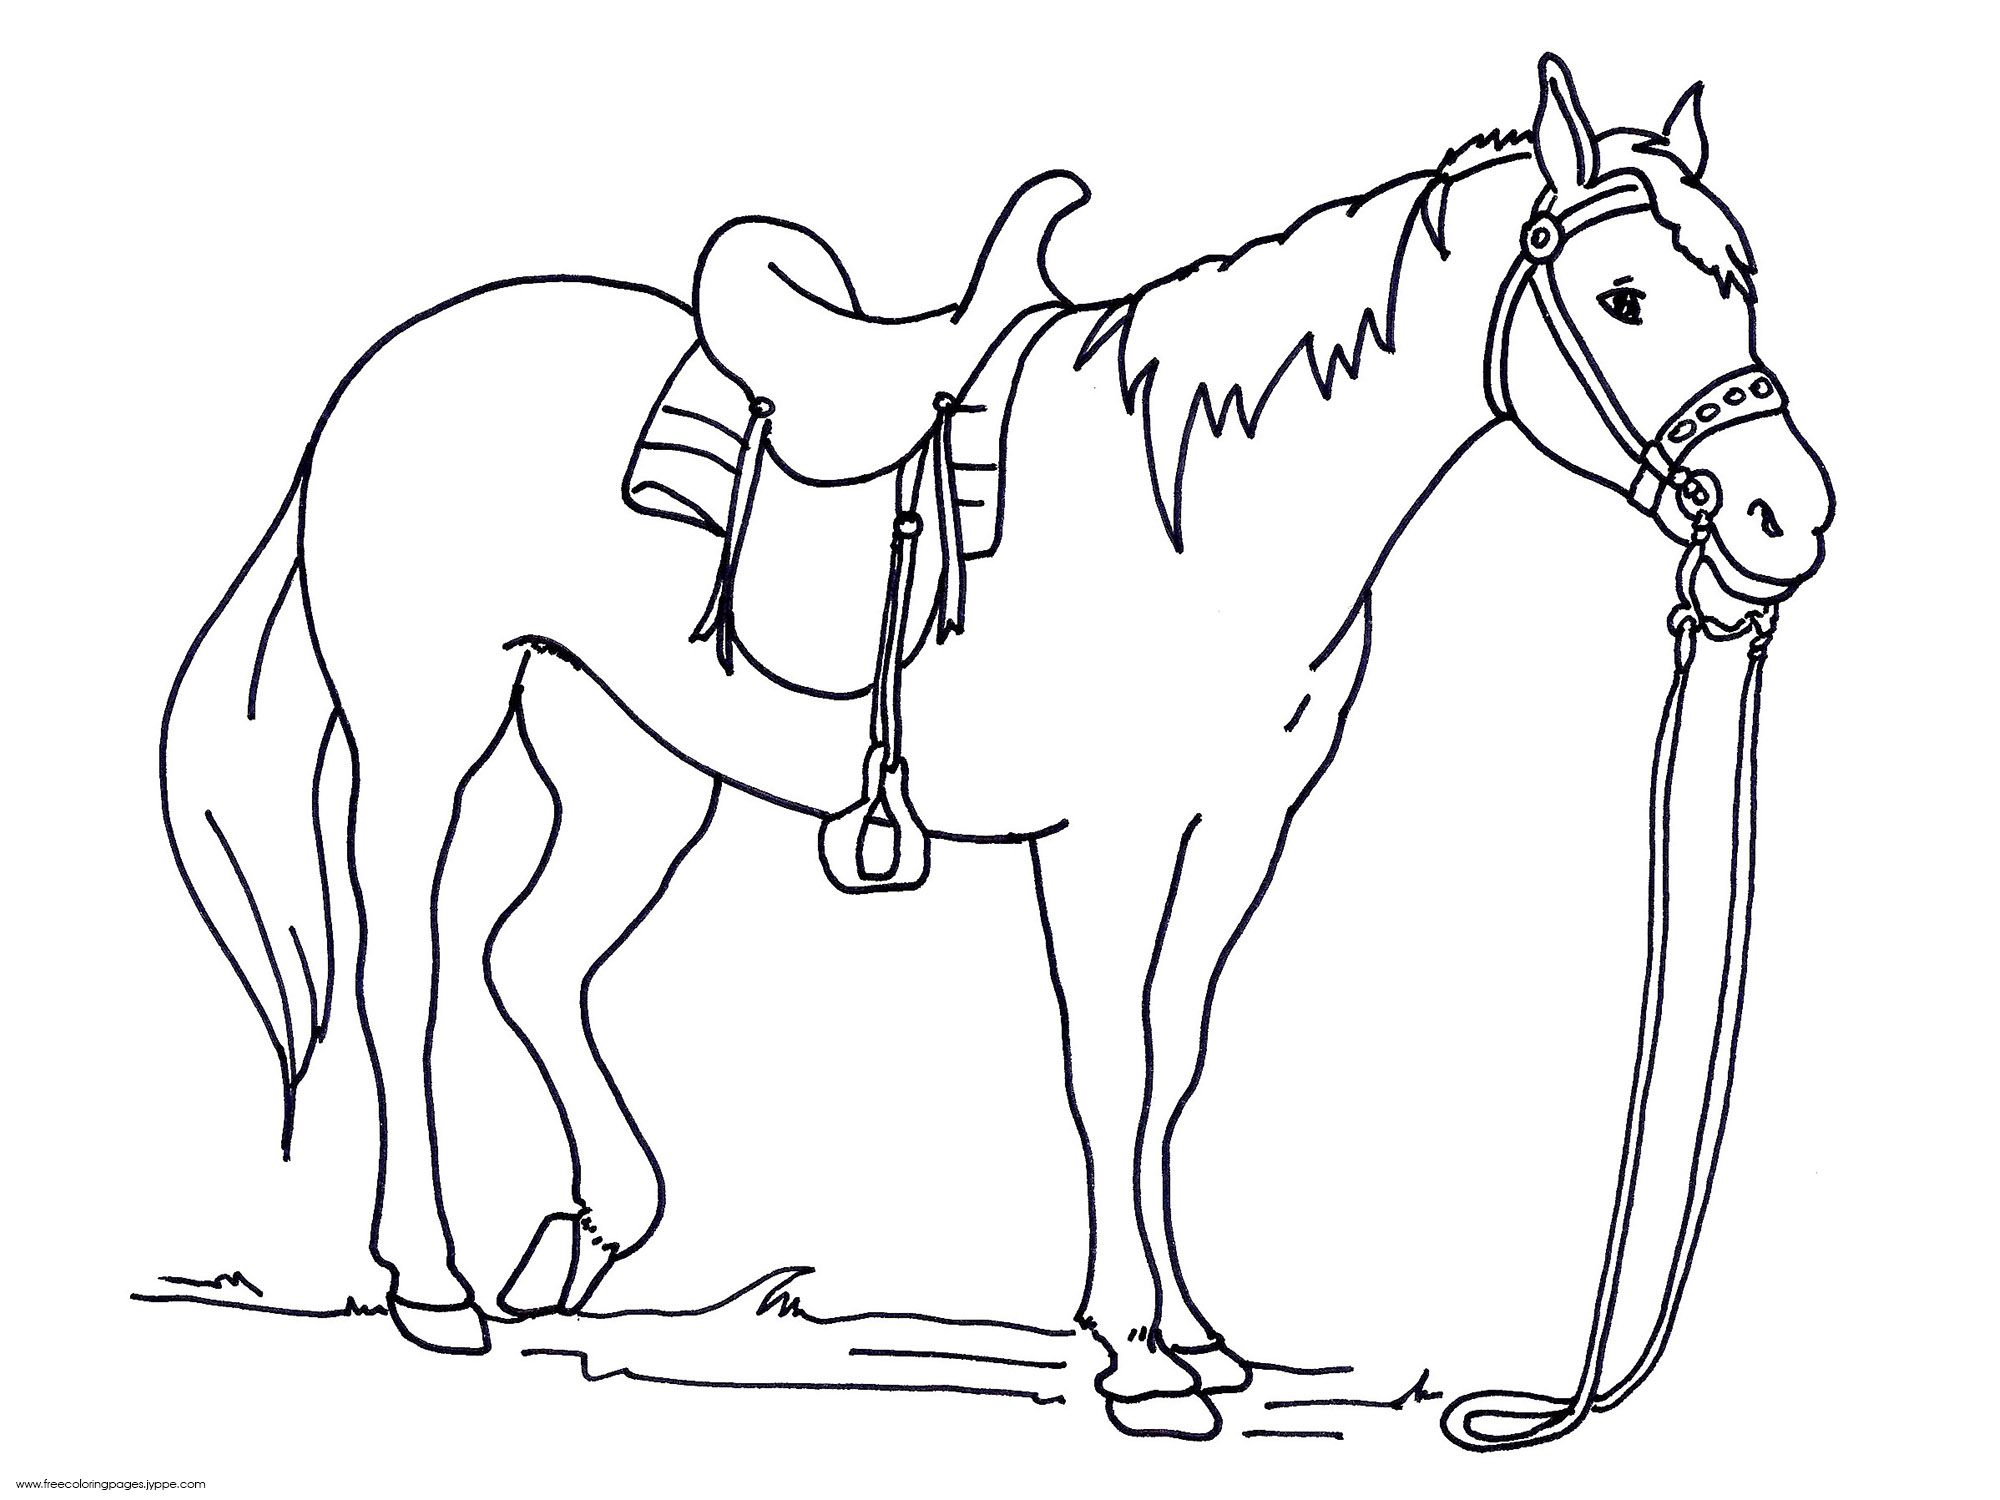 Horse coloring pages printable free coloring pages for Horse coloring pages printable free